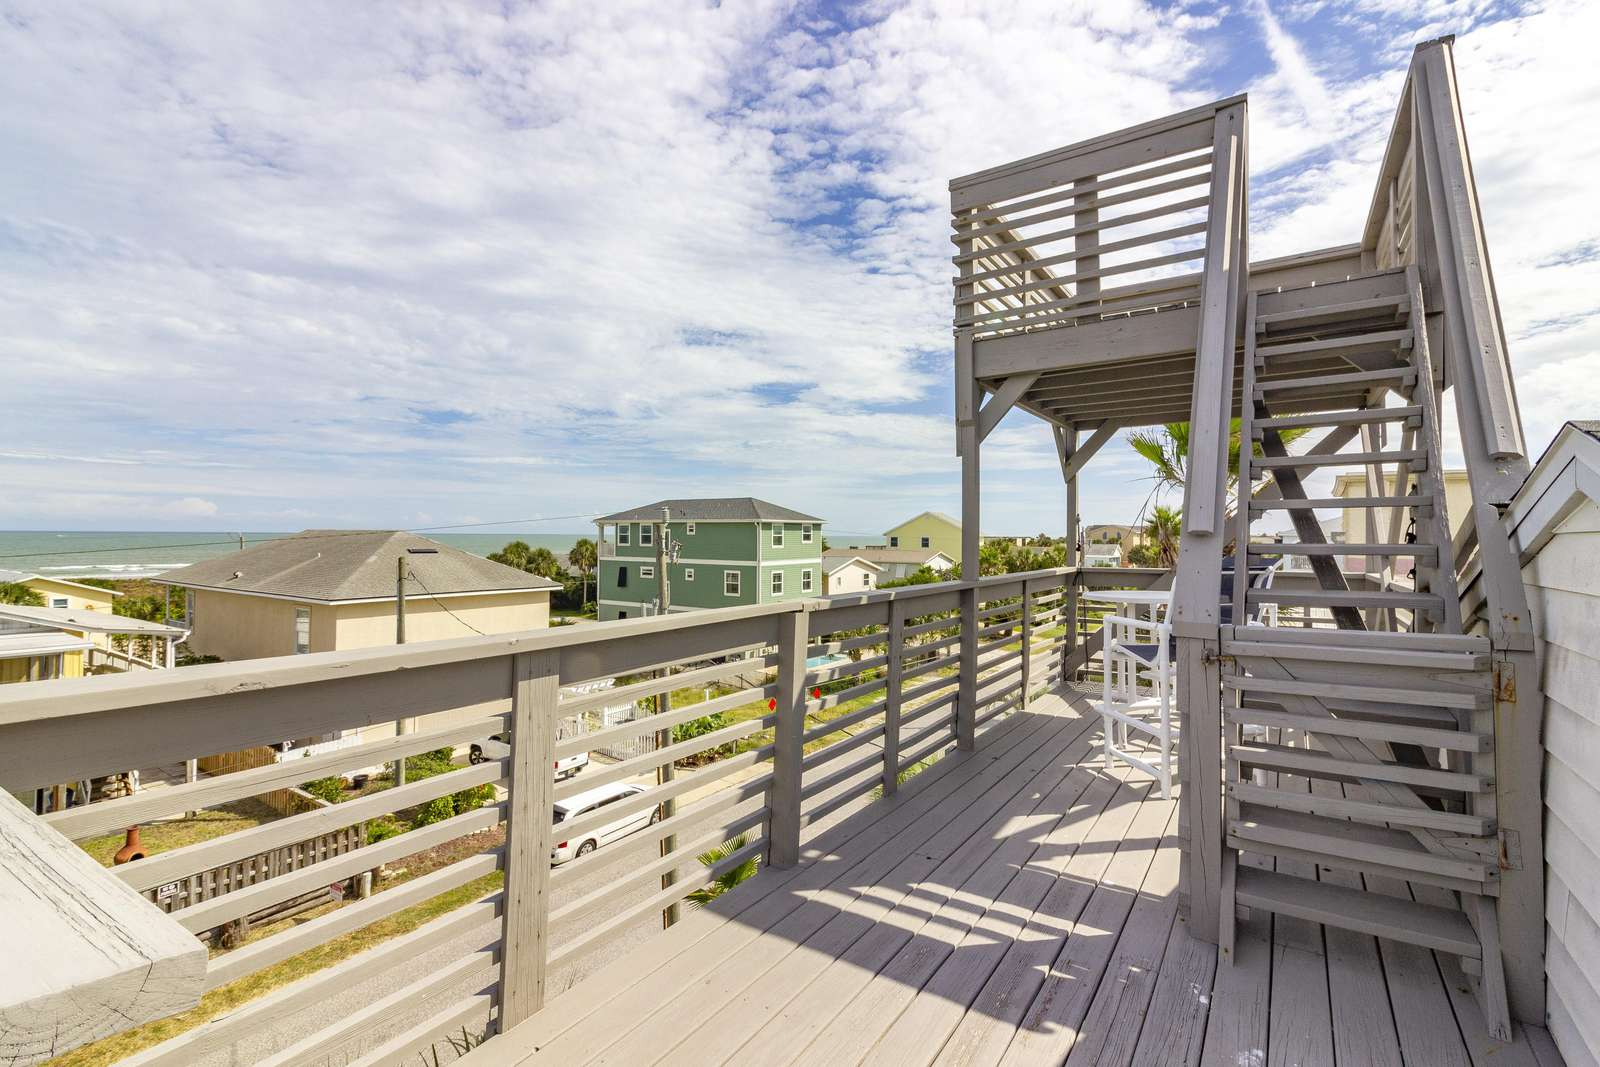 Covered Balcony / Viewing Deck